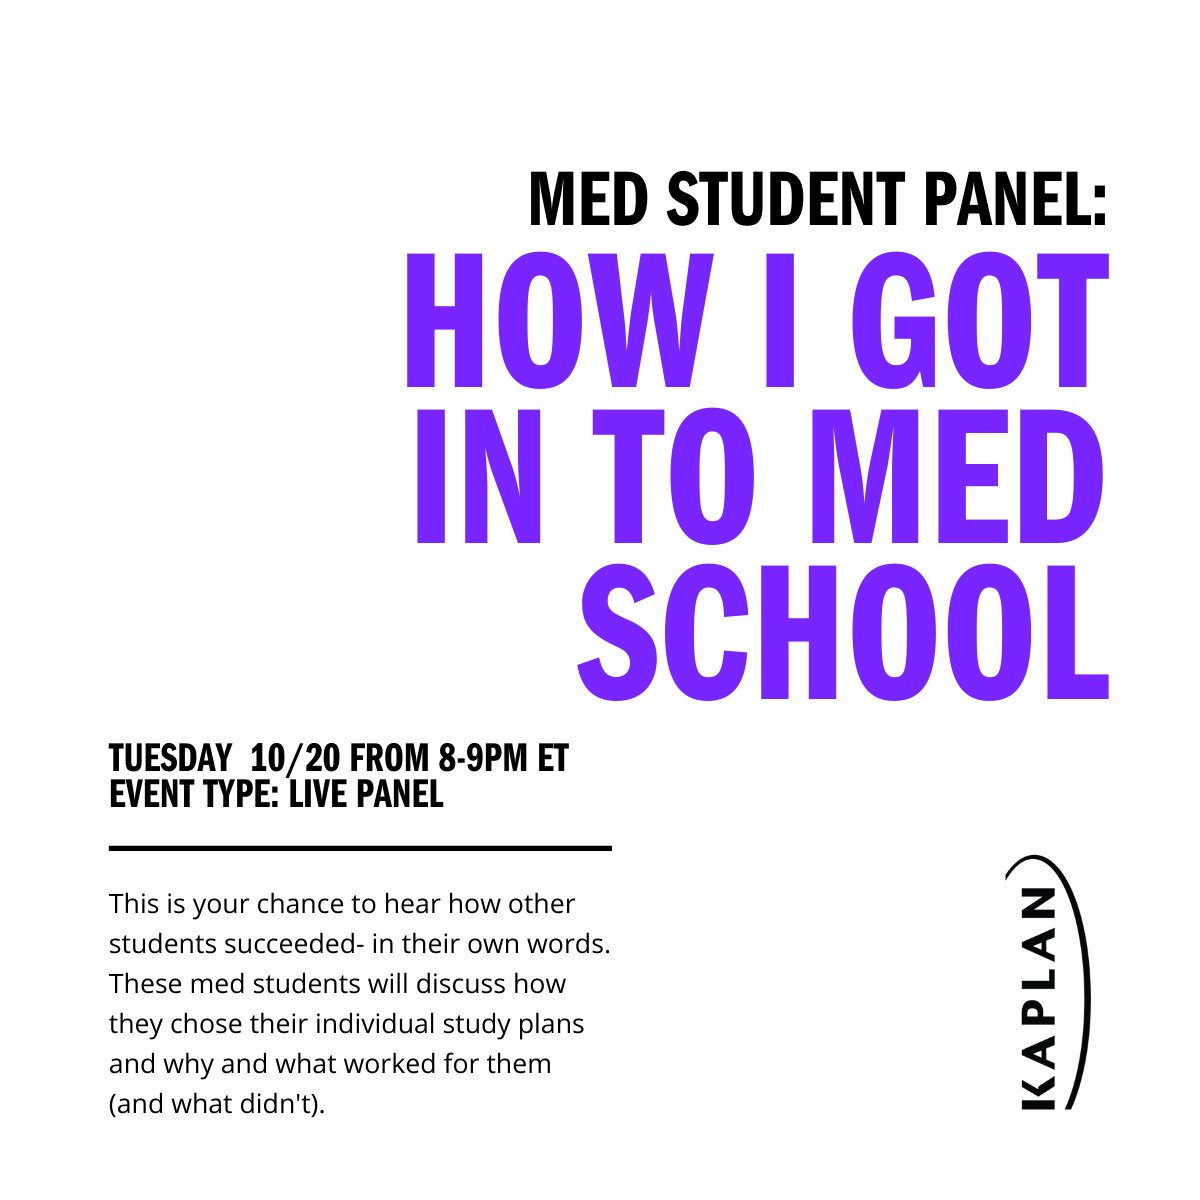 Hear from current med students themselves on what worked for them when they prepared for their MCAT and their applications. Join us for this live panel on 10/20 and bring ALL your questions. And we mean ALL of them. Register here: https://t.co/T3qT9j57Lq #futurephysician https://t.co/lzbnFLcsfv